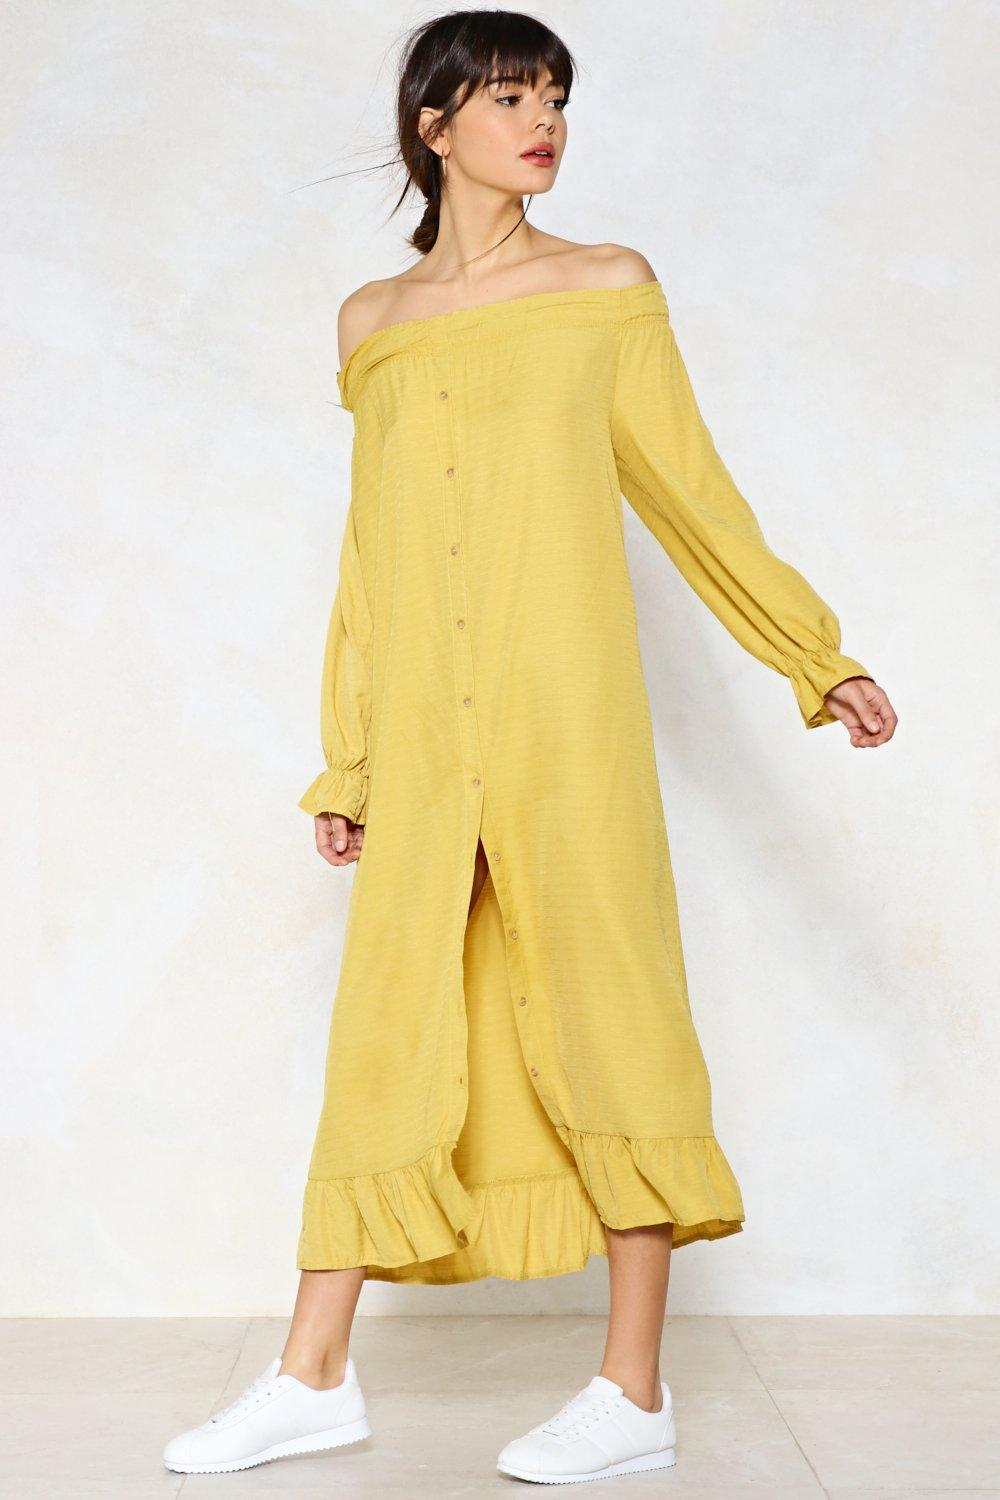 b28a7e60f2 Nastygal · Bright as a Button Maxi Dress · #anthropologie #boutique  #brightbuttonmaxi #cardiganillinoisgy #freepeople ...